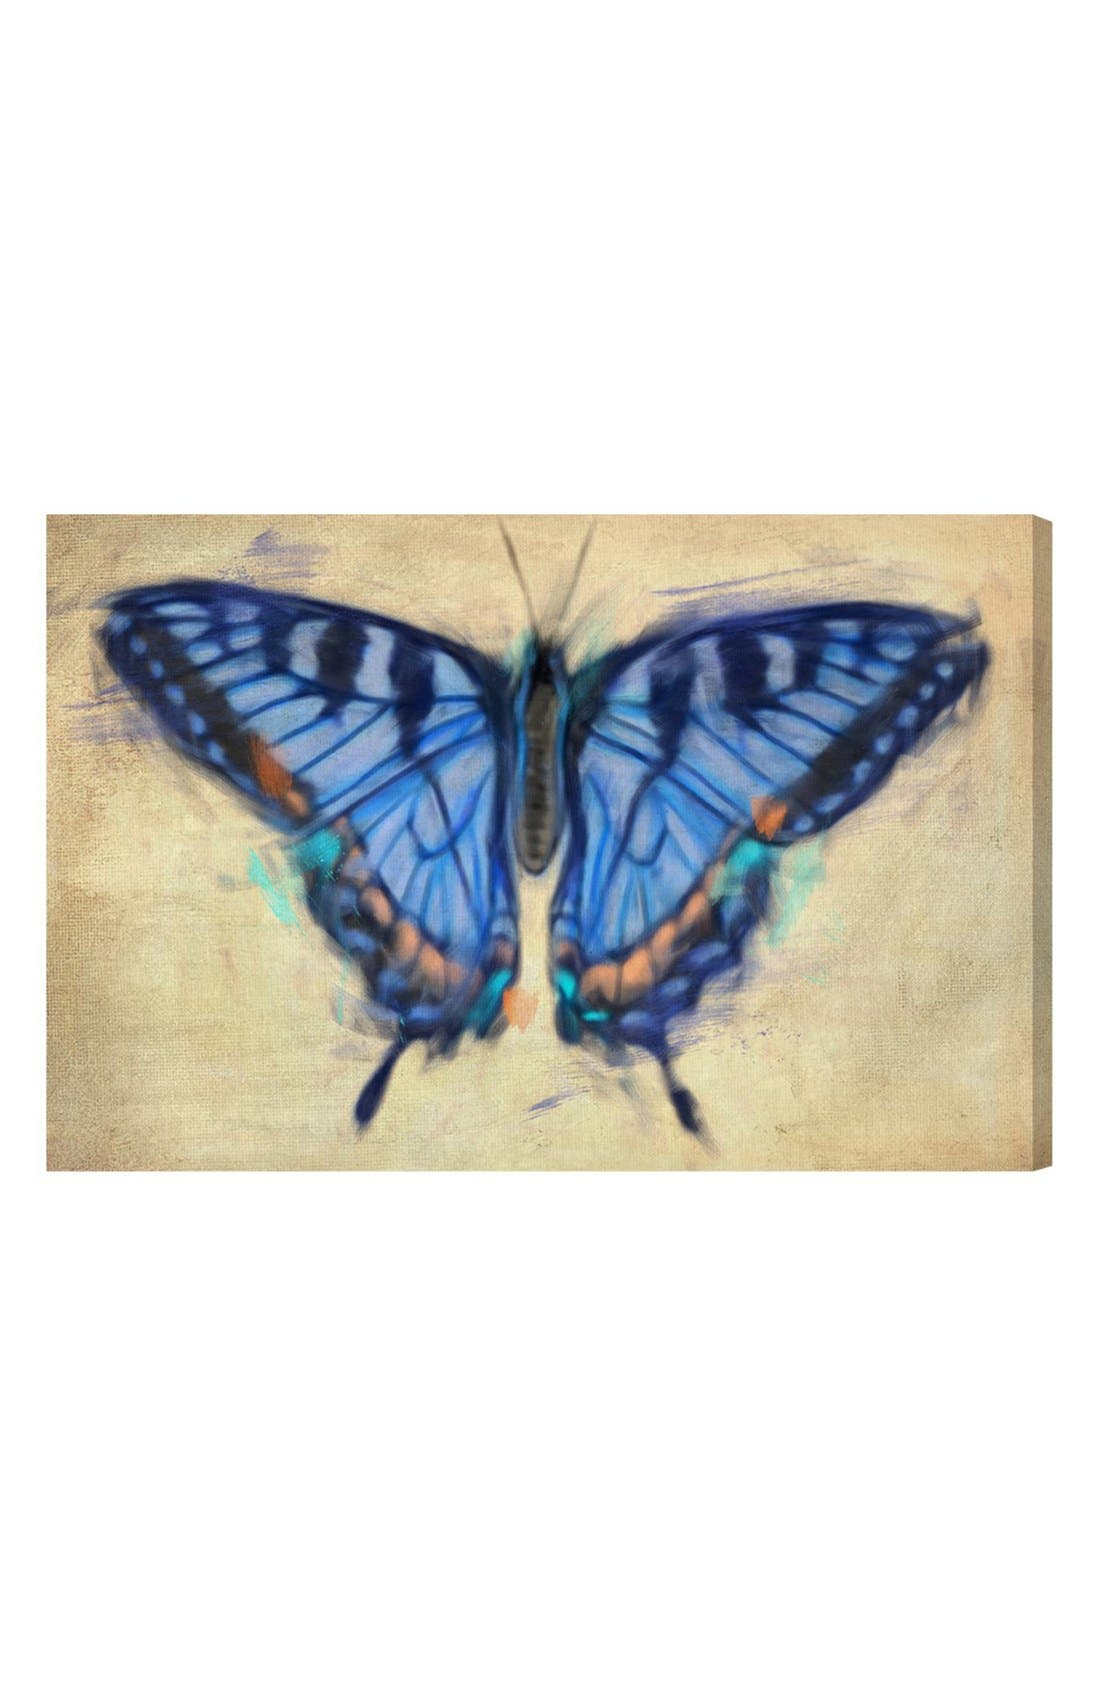 'Blissful Butterfly' Canvas Wall Art,                             Main thumbnail 1, color,                             400